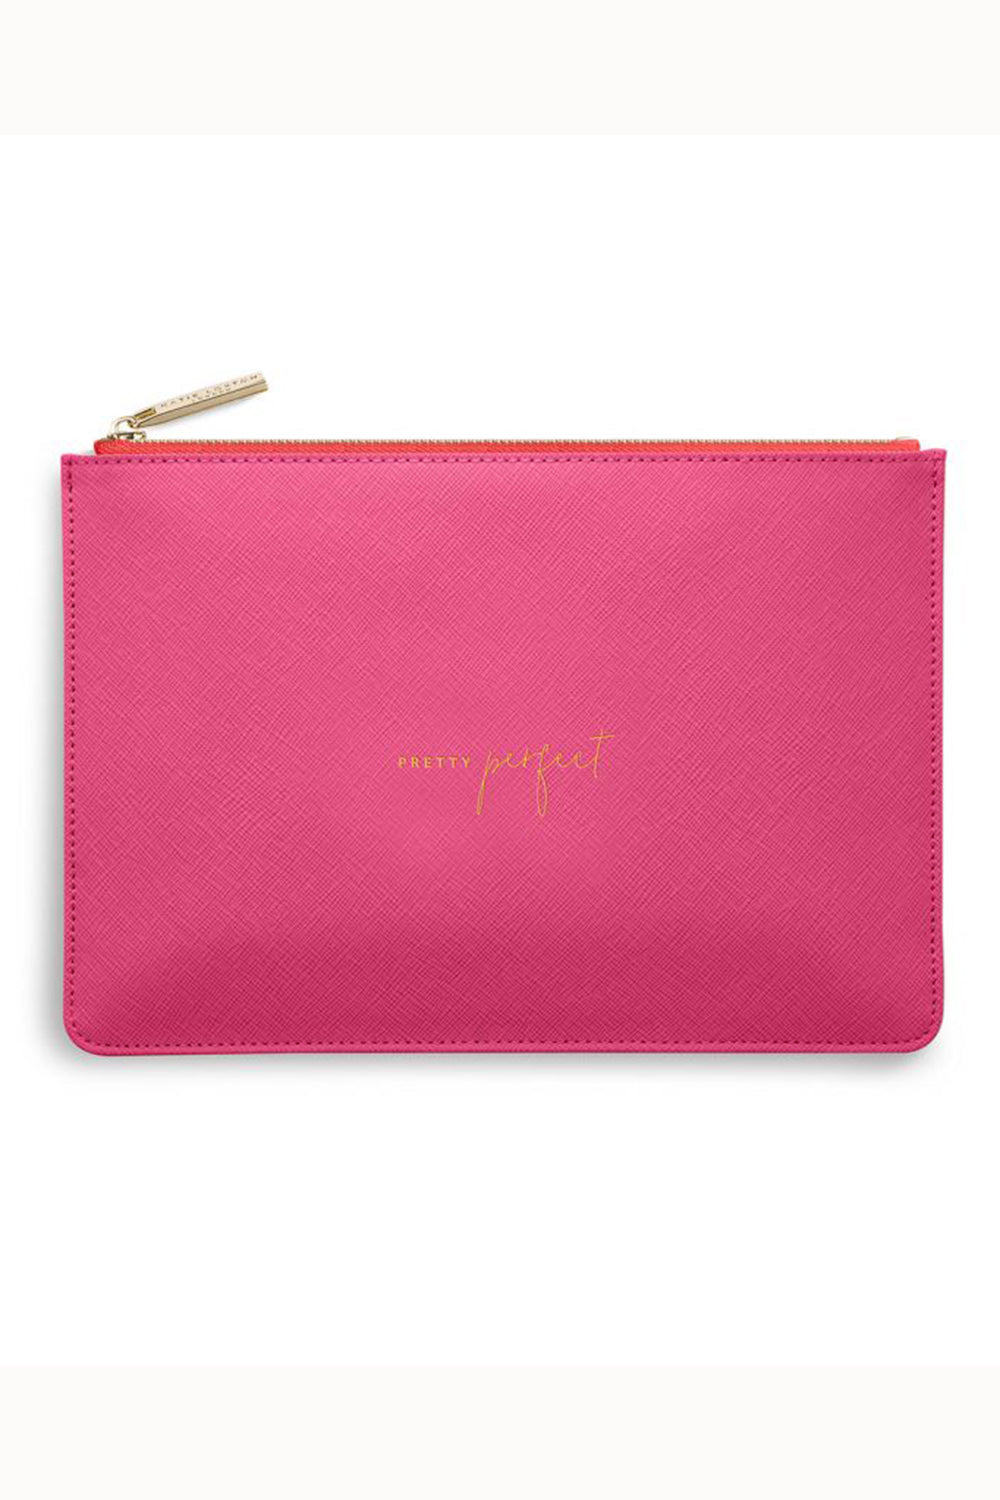 Perfect Pouch - Hot Pink